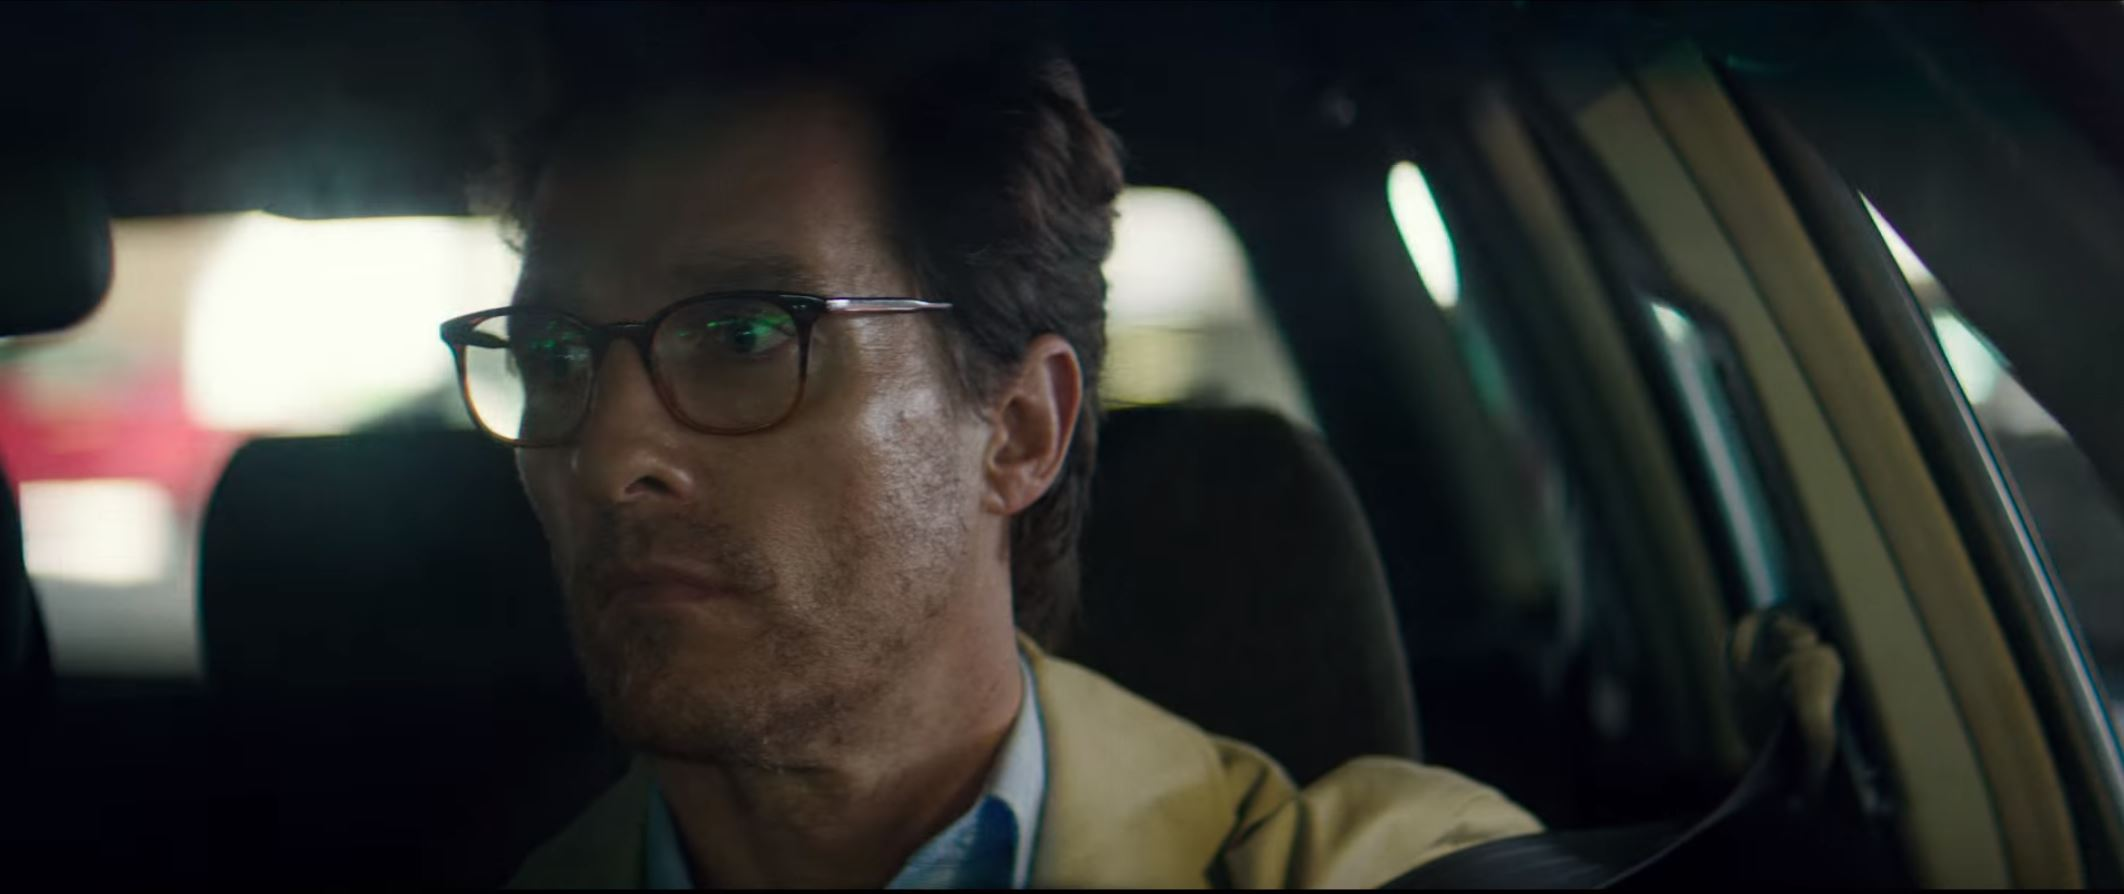 Watch The Trailer: The Sea of Trees with Matthew McConaughey